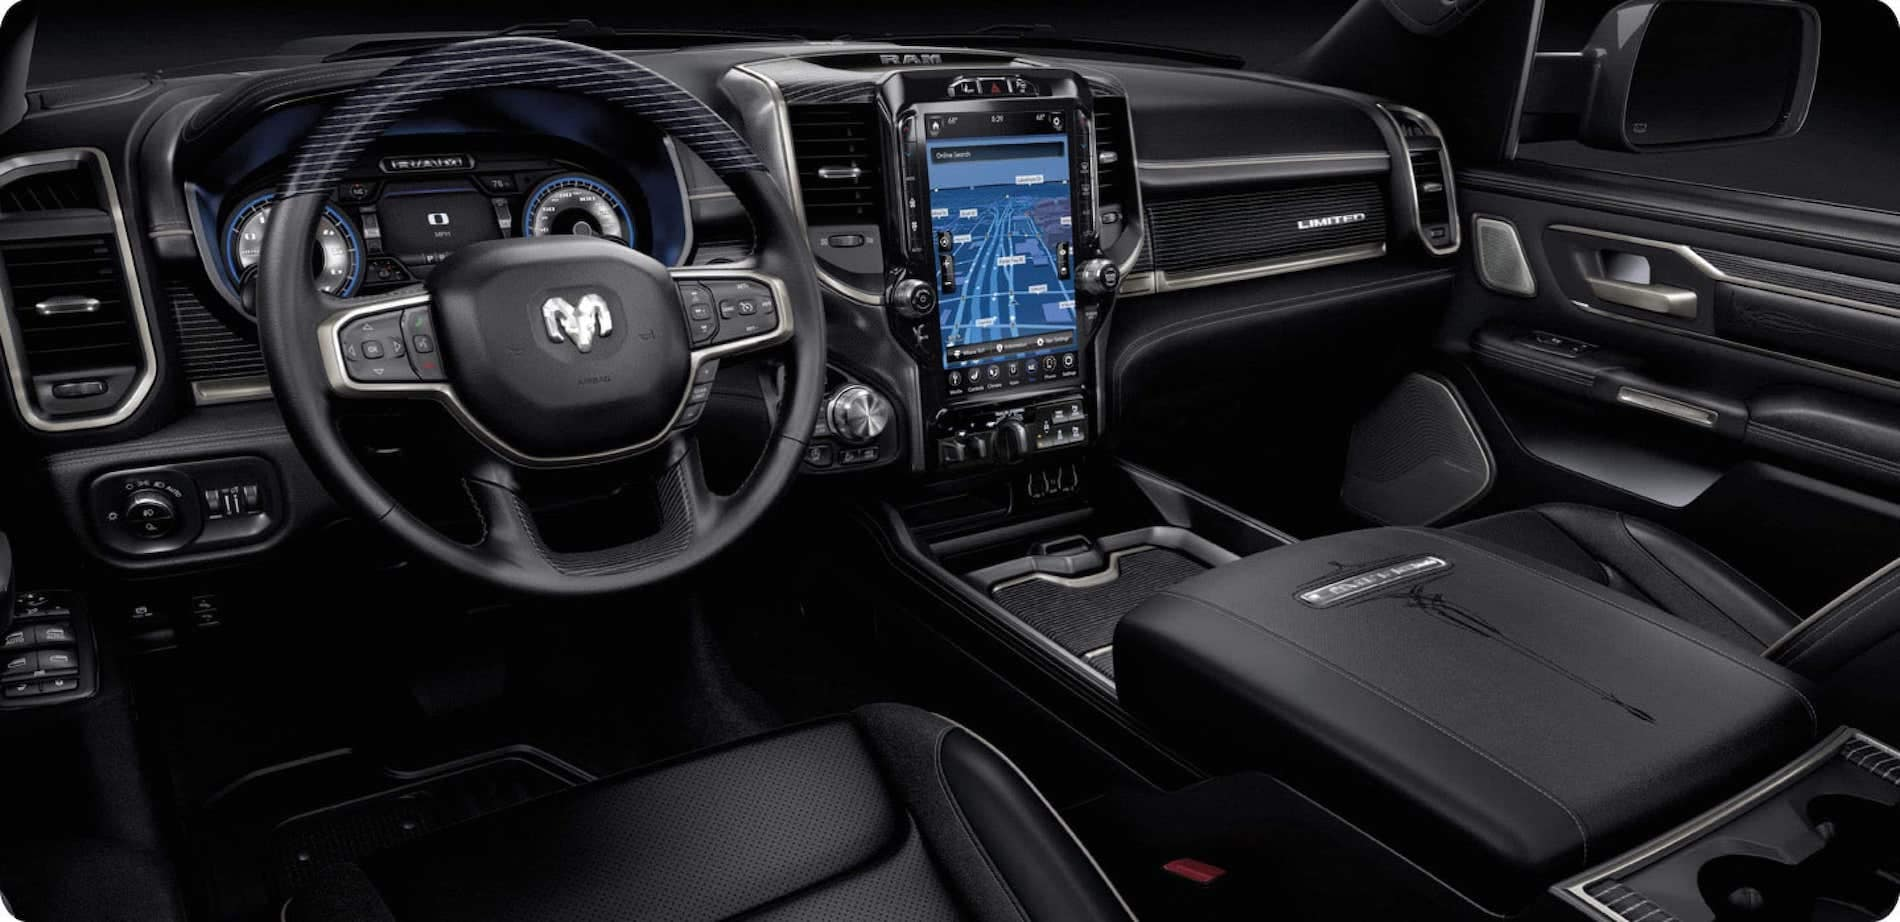 2021 Ram 1500 Interior Infotainment System available in Salisbury MD